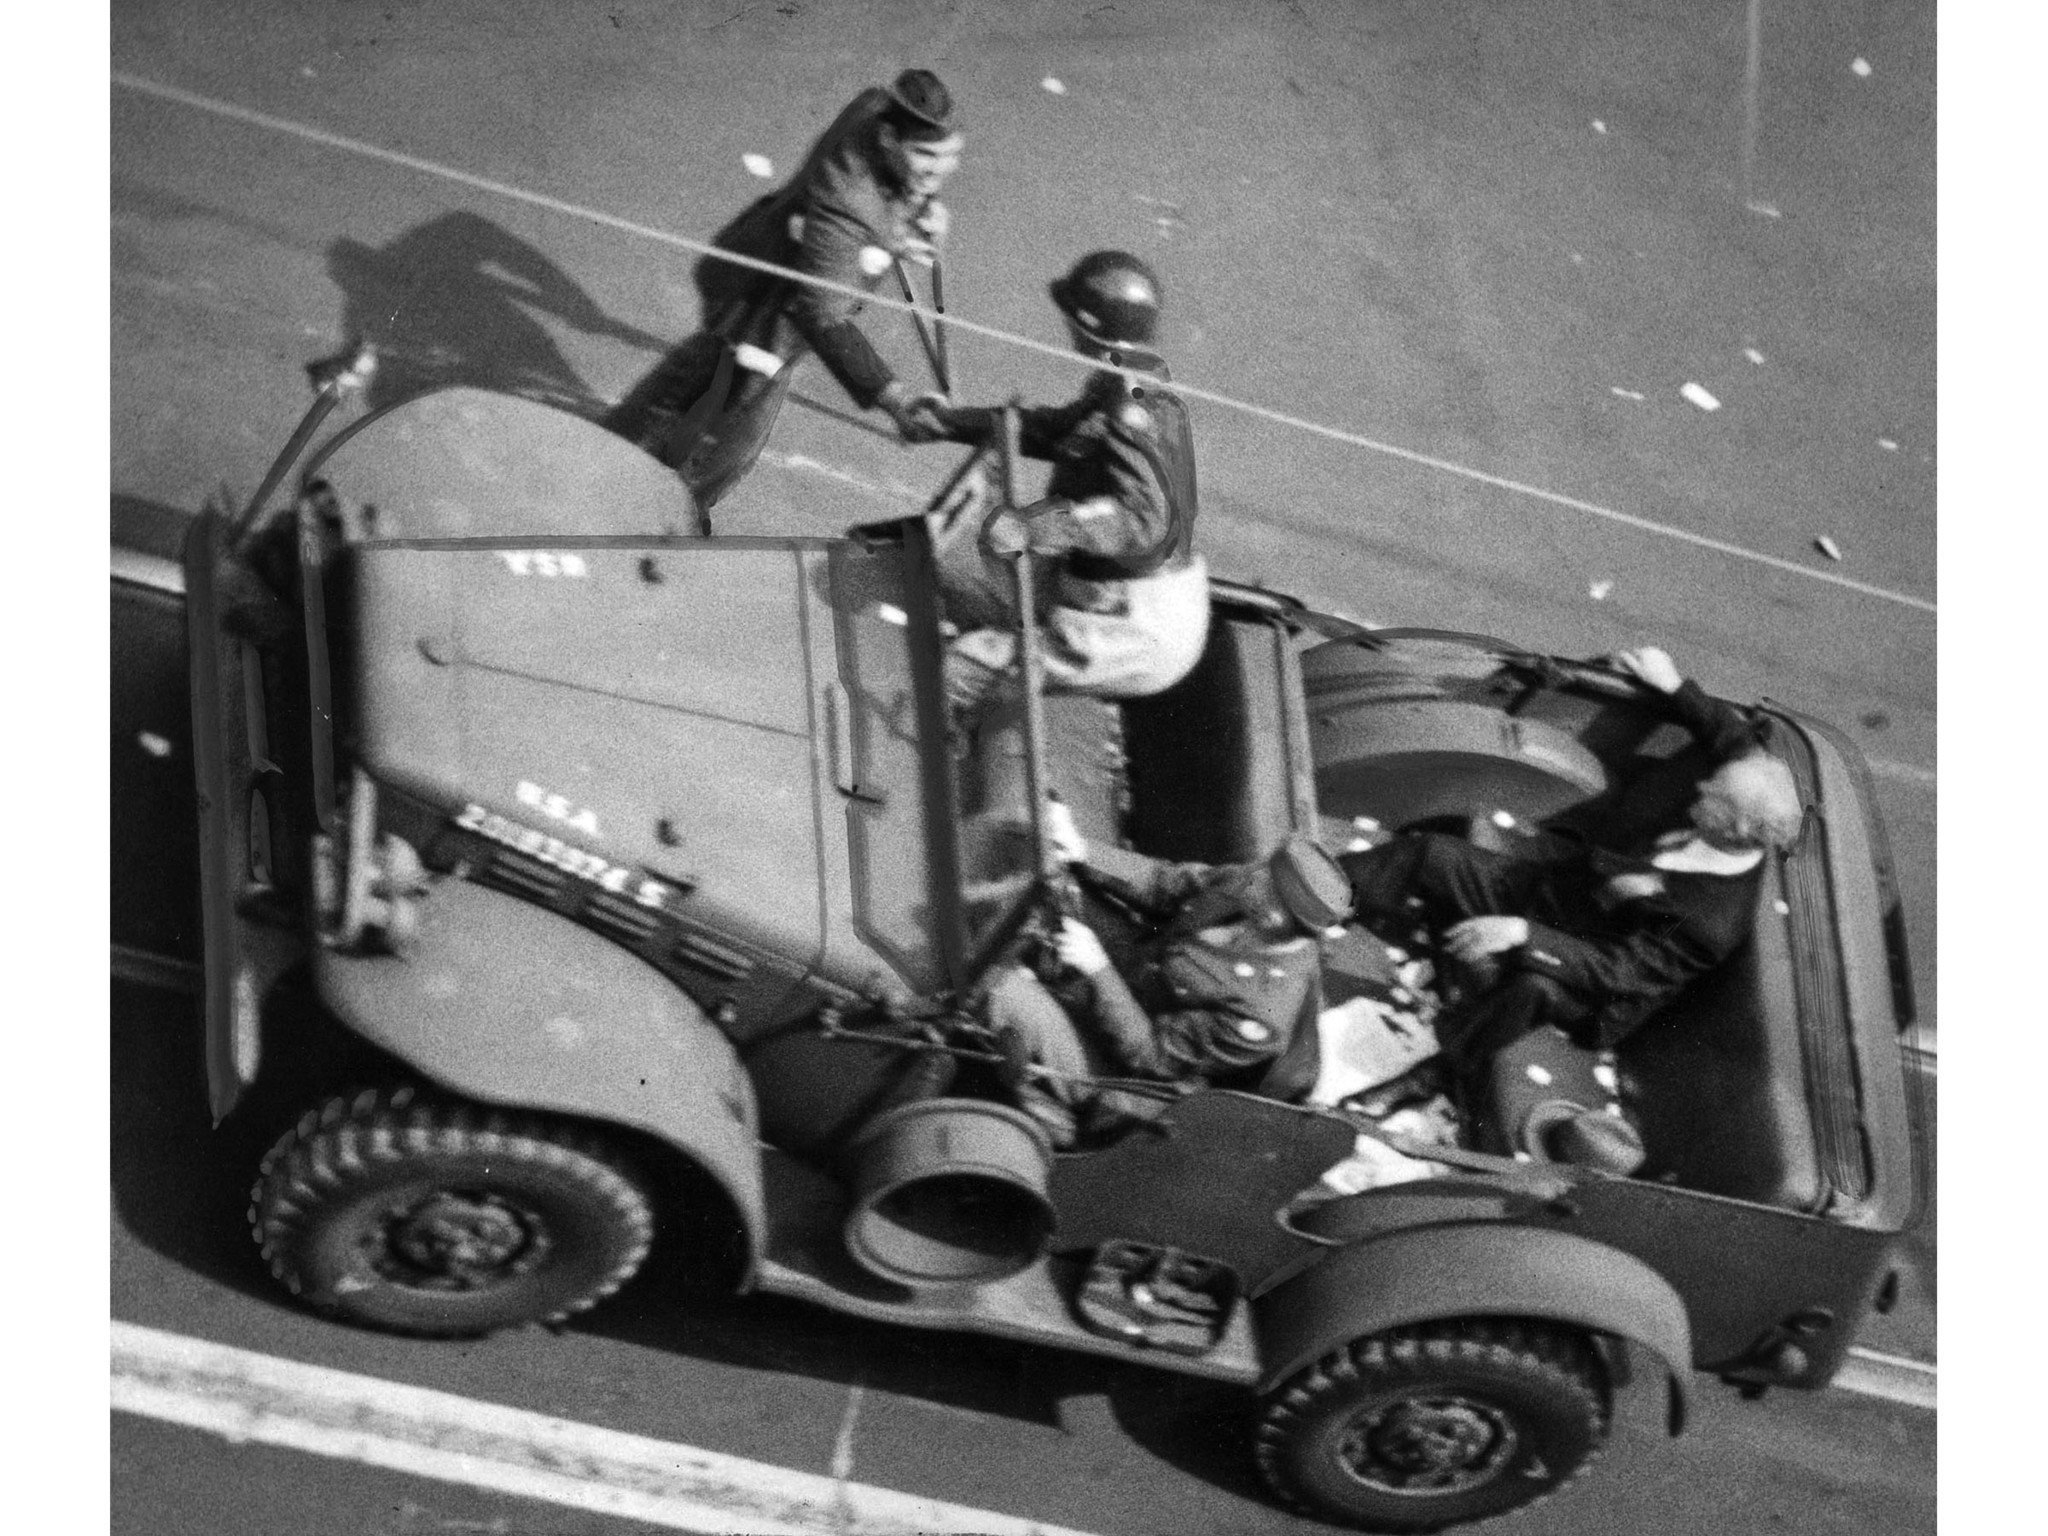 June 9, 1945: Gen. George S. Patton Jr., stops jeep during parade to shake hands with soldier who ha